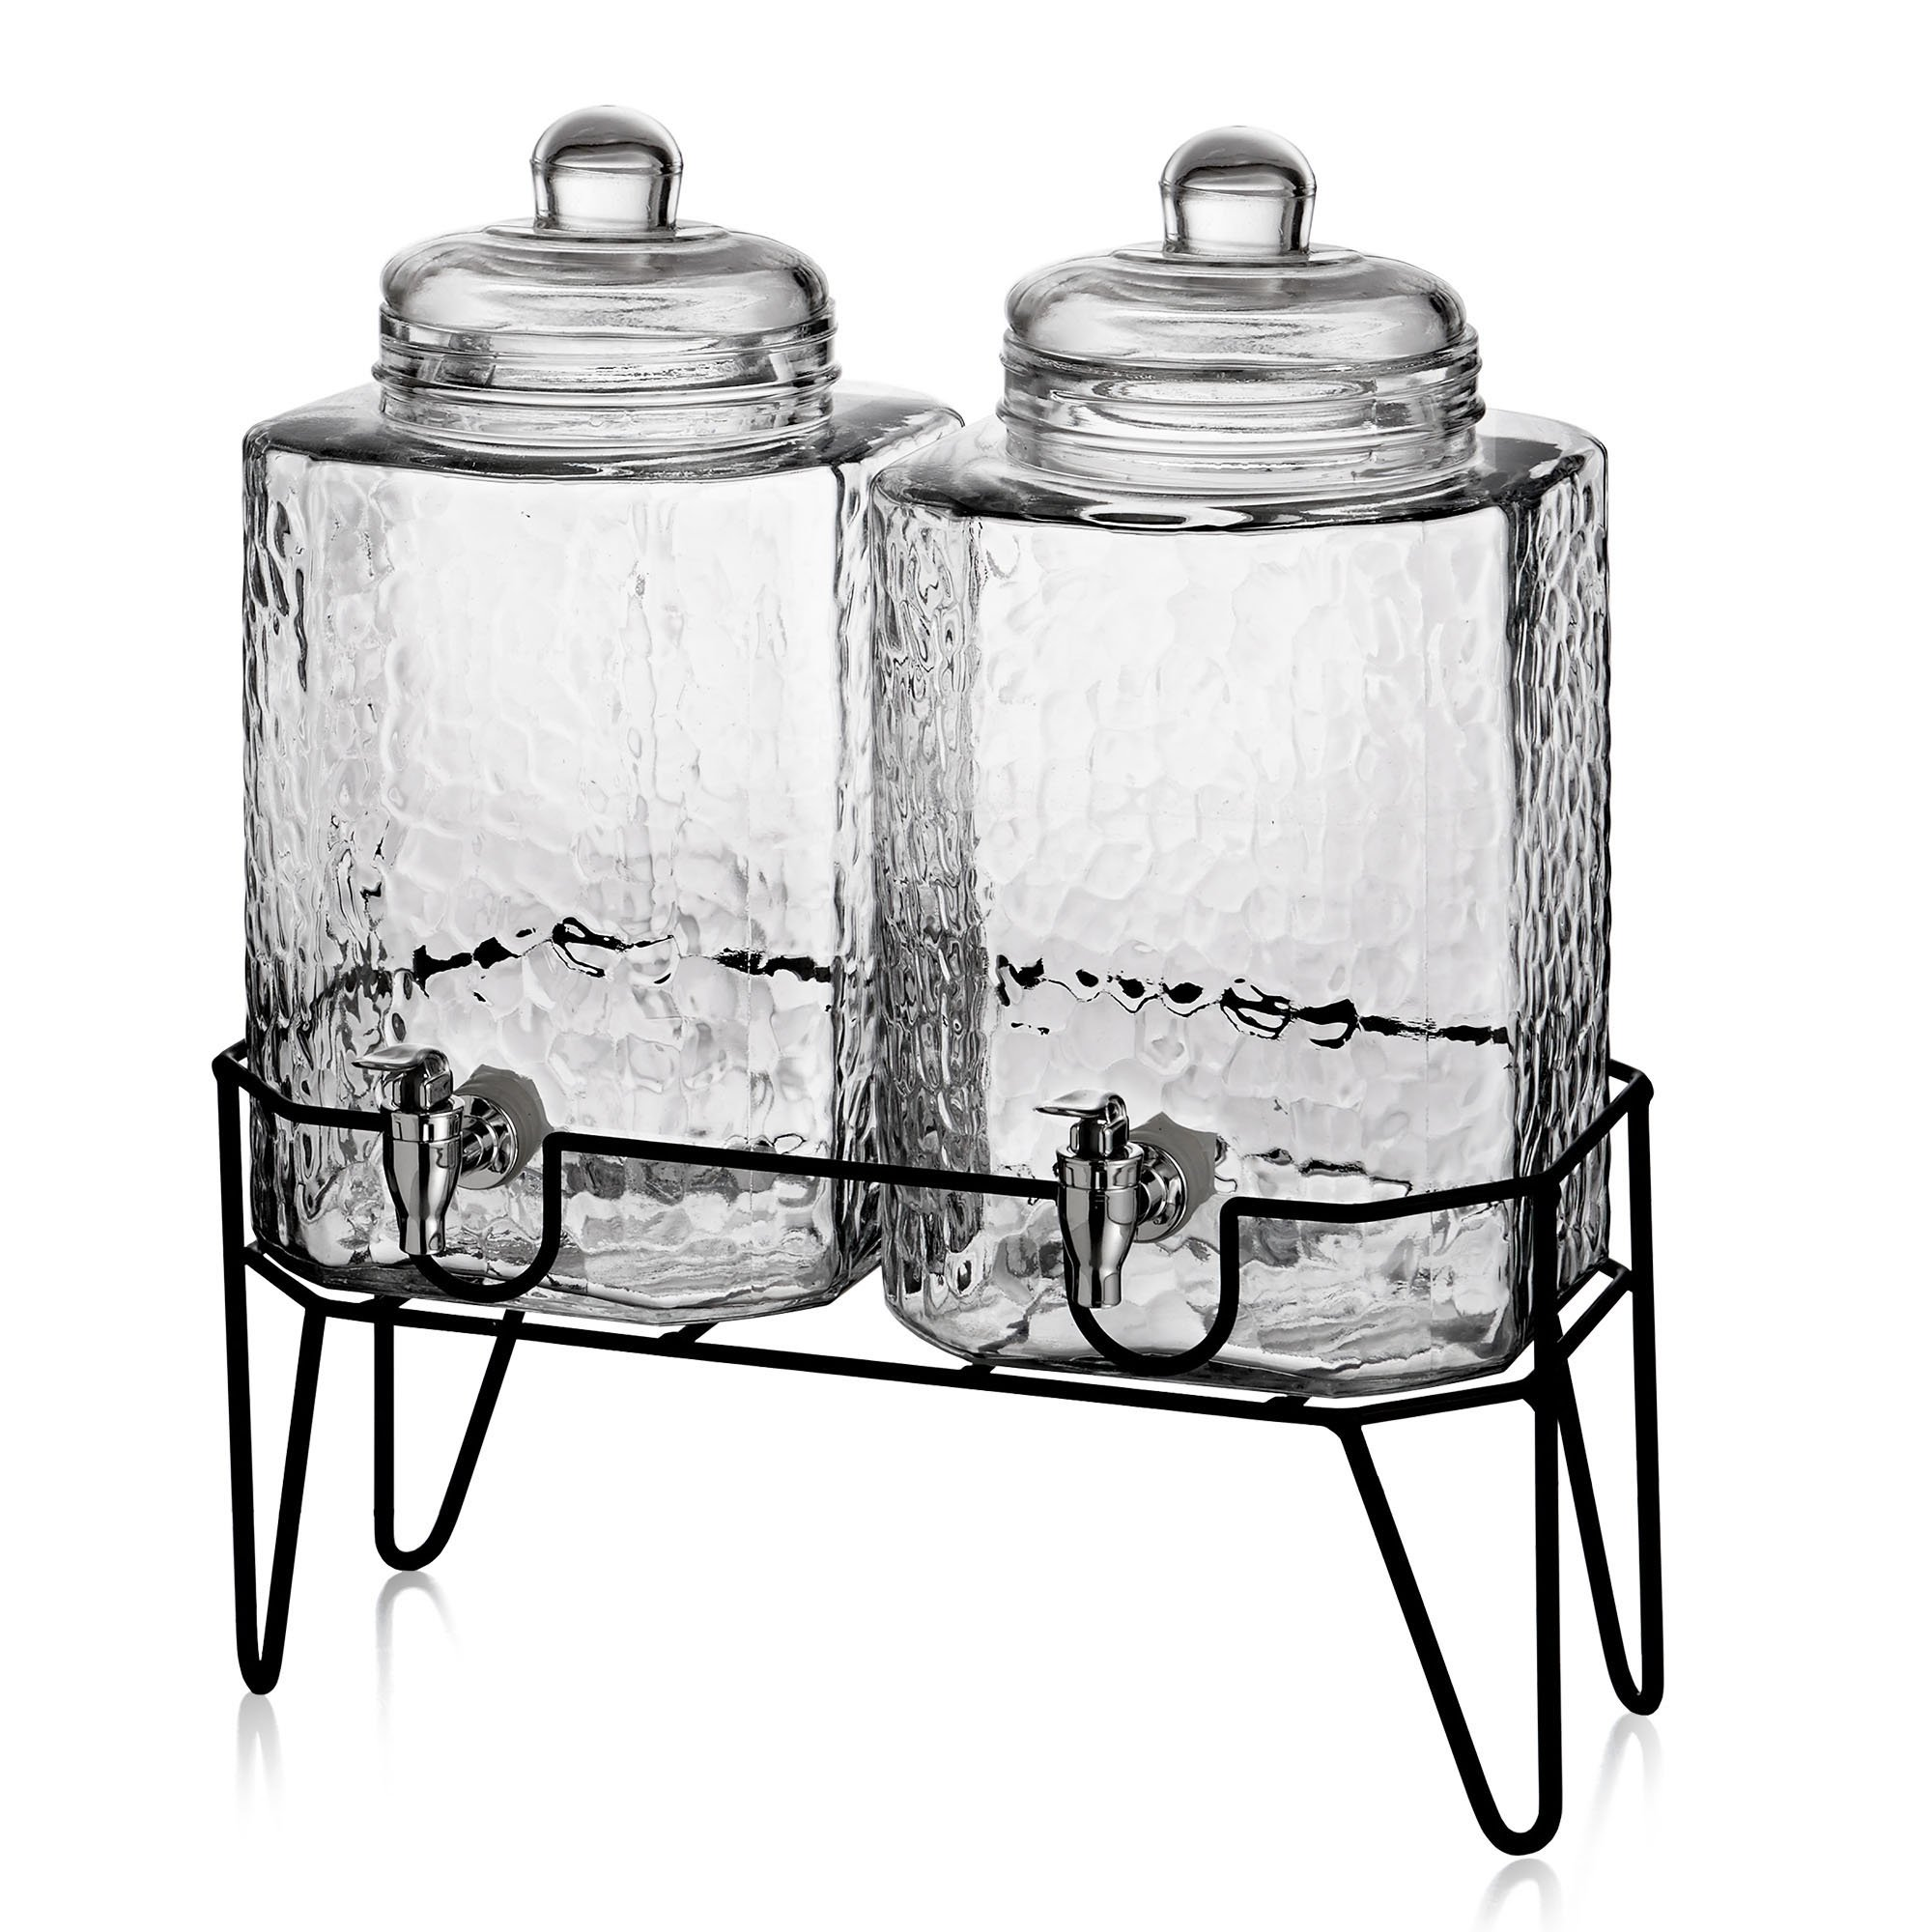 Style Setter Hamburg 210266-GB 1.5 Gallon Each Glass Beverage Drink Dispensers with Metal Stand (Set of 2), 8.2 x 16.8'' Clear by Style Setter (Image #1)